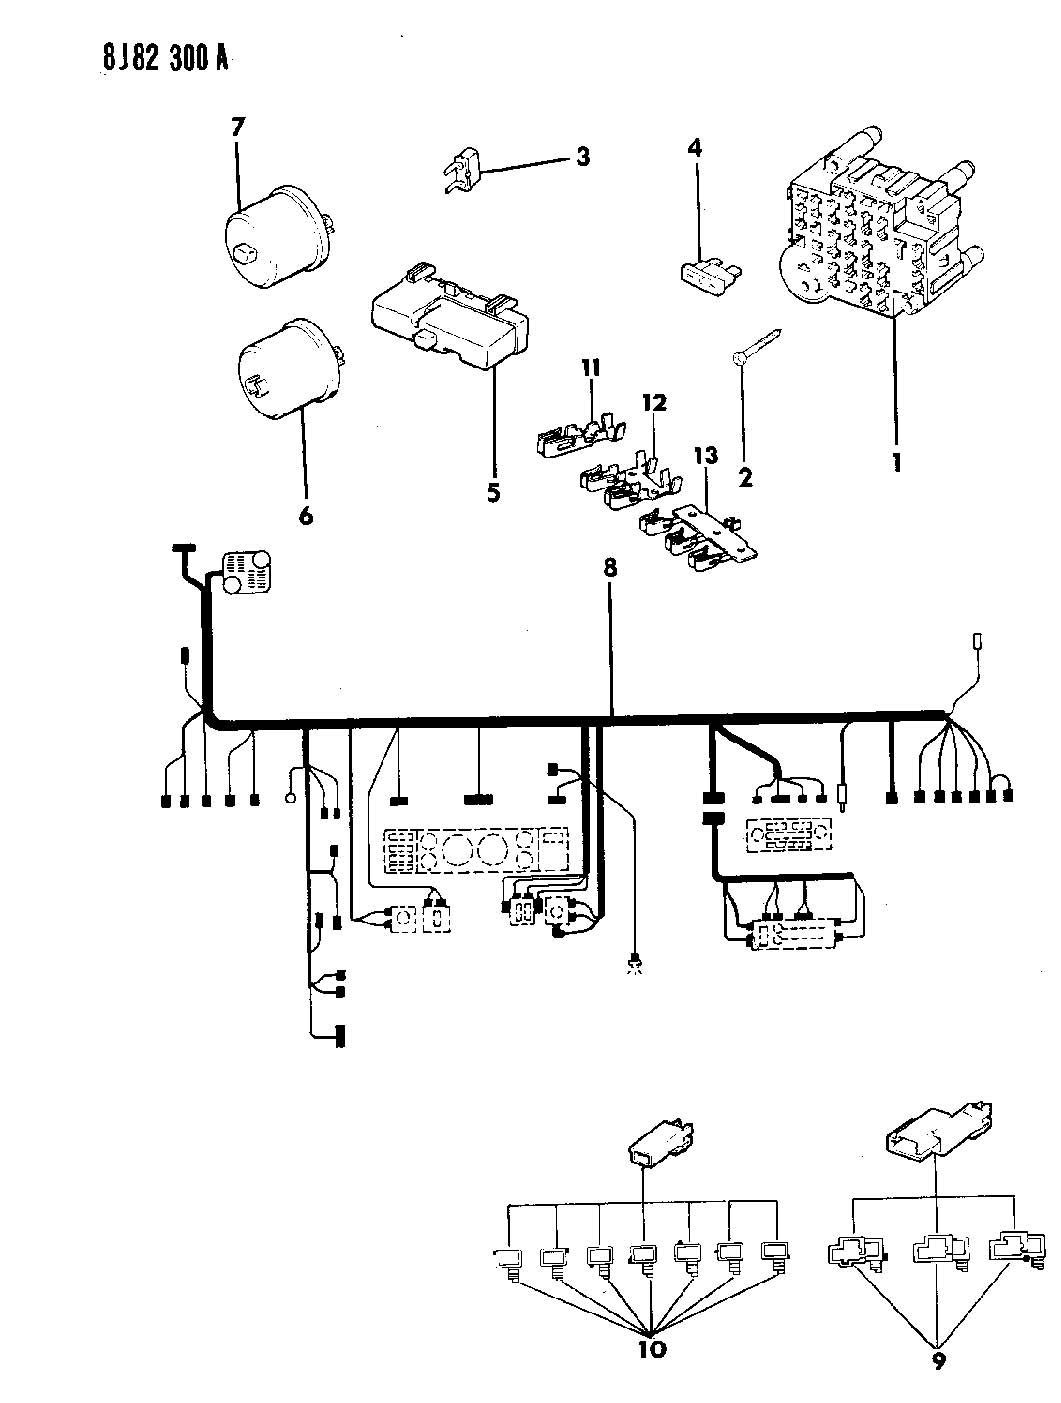 94 Jeep Alternator Wiring Diagram Library 1994 Mustang Harness Wrangler Tail Light Yj Jodebal Com On 1989